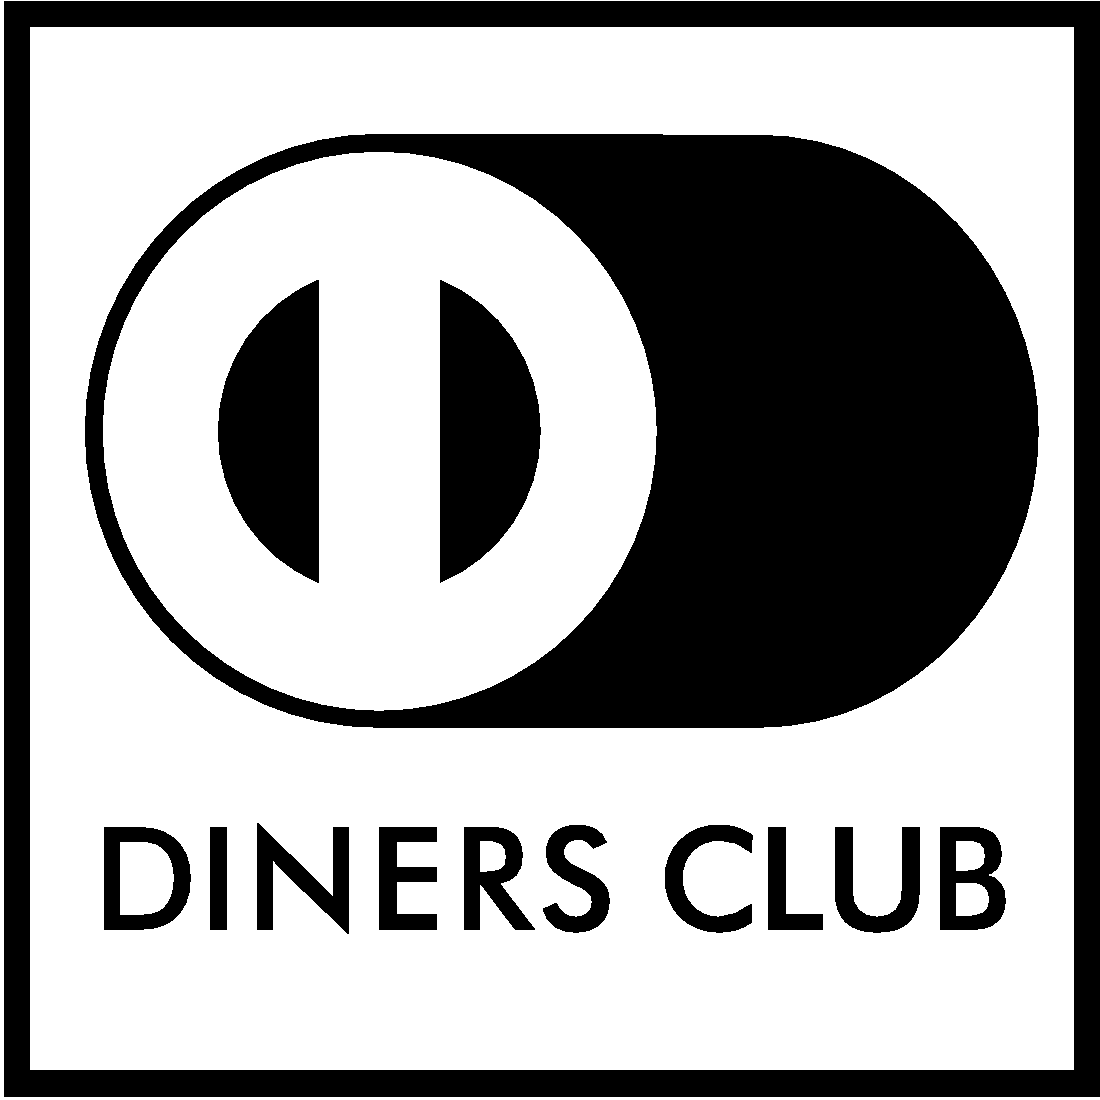 diners club atm